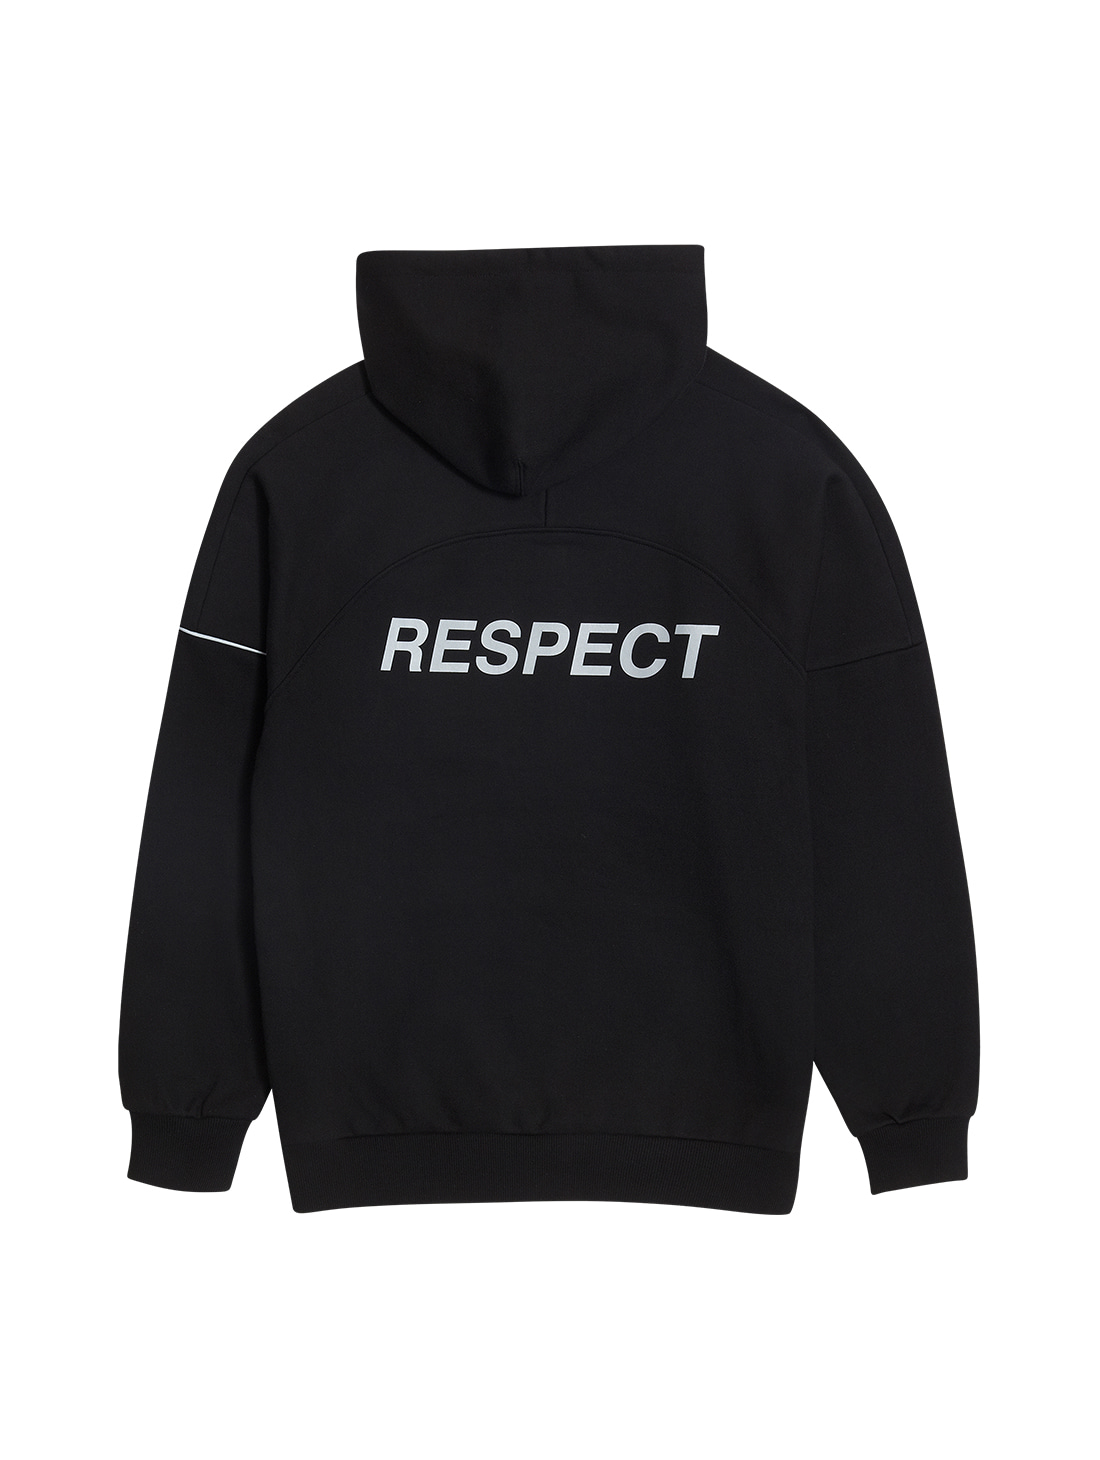 GOALSTUDIO RESPECT HOODIE - BLACK